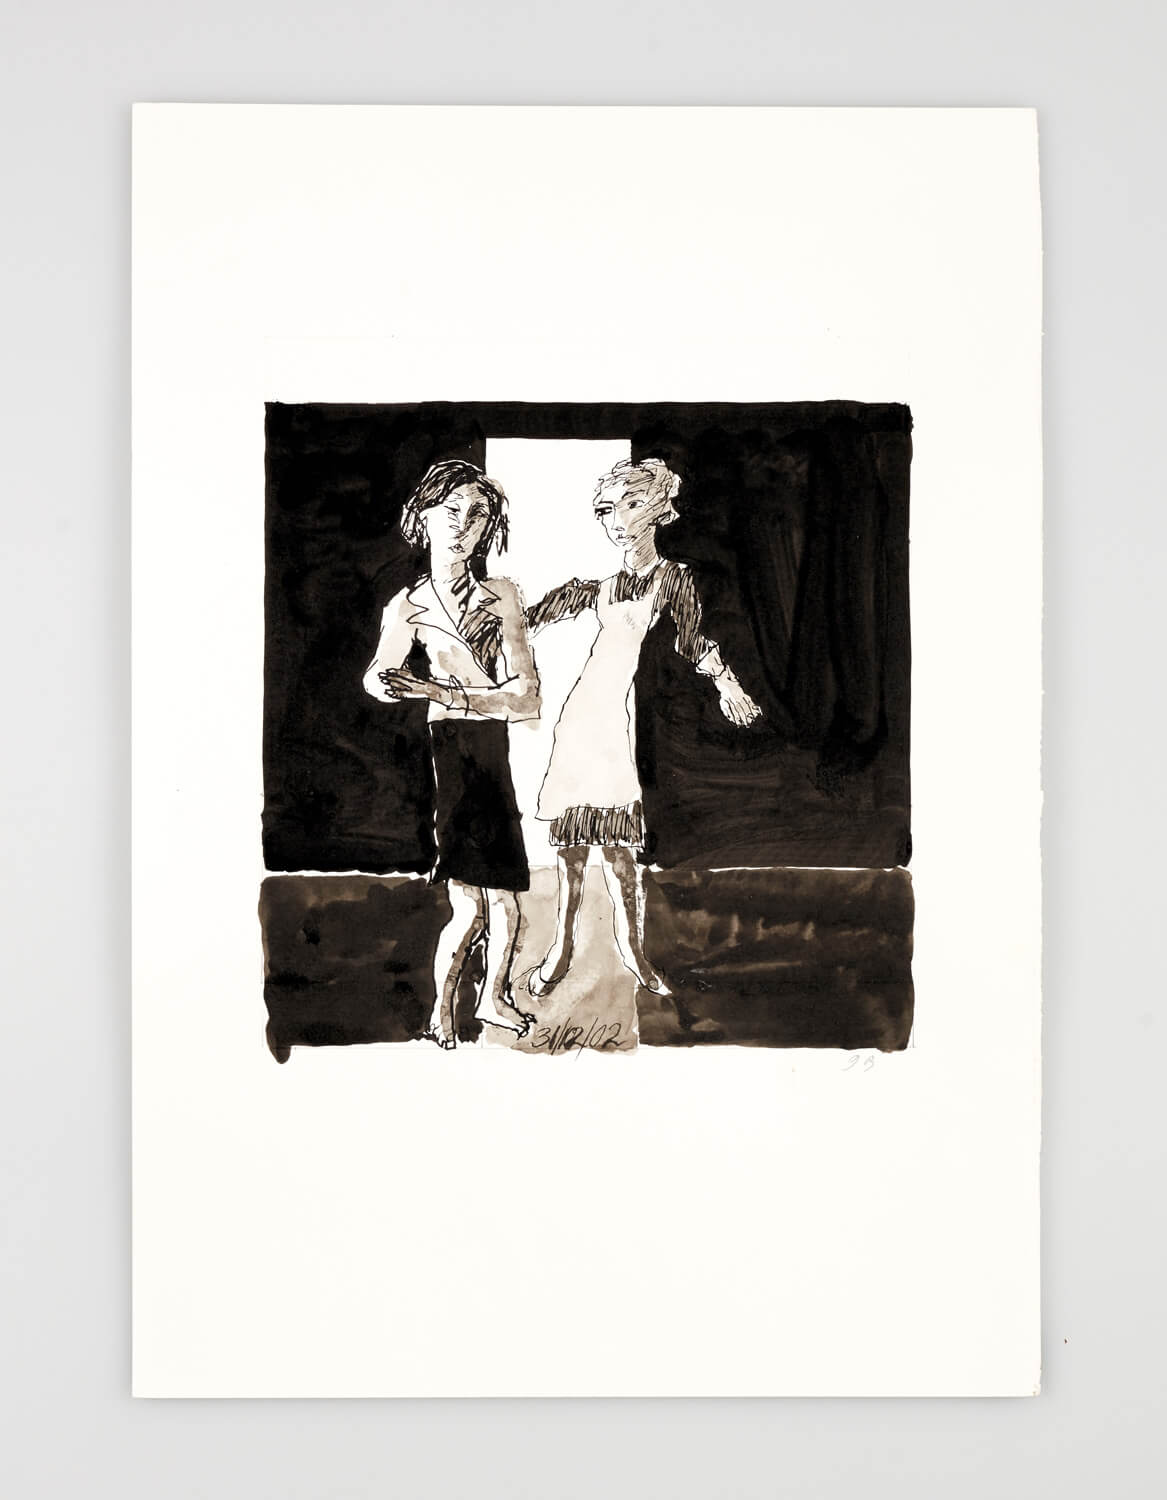 JB090 - Two Women - Being dressed - 2002 - 50 x 35 cm - Indian ink and wash on paper